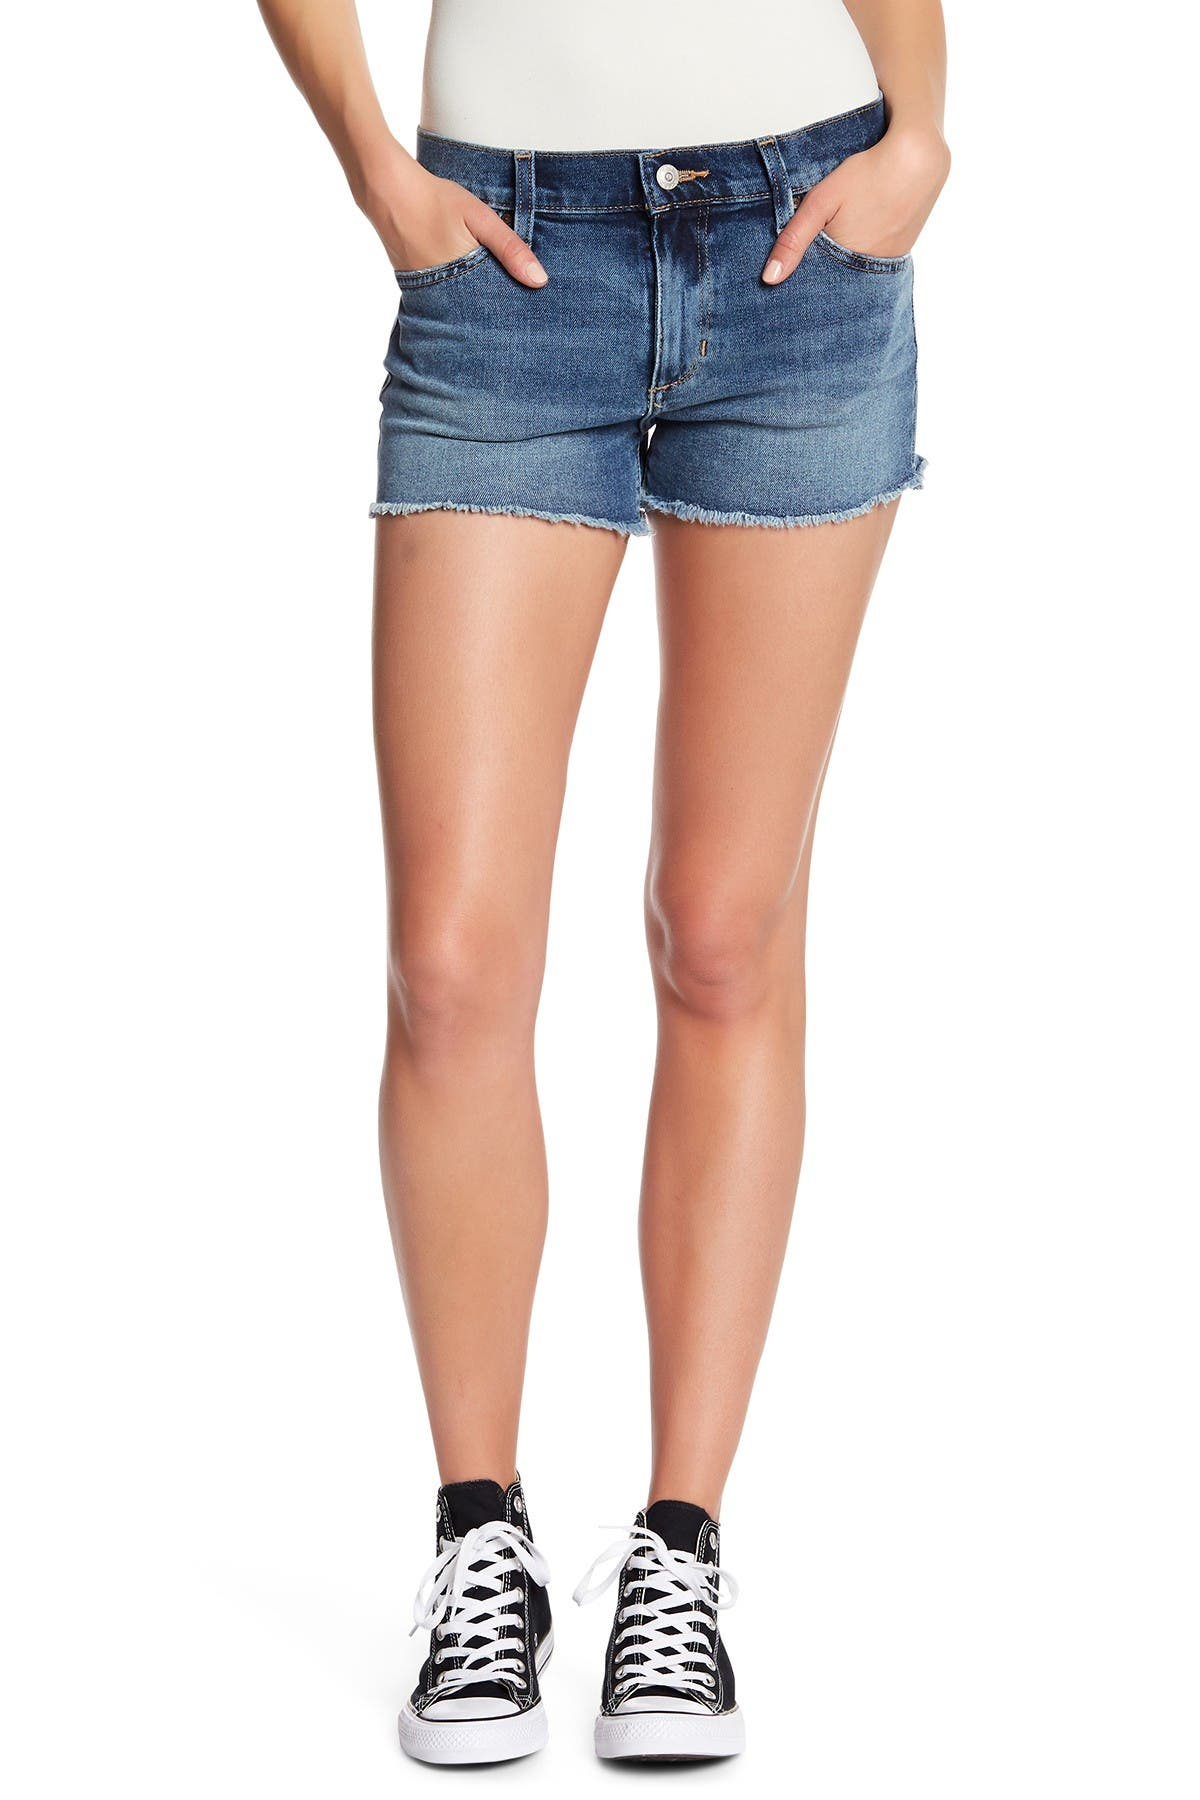 Image of Joe's Jeans Frayed Hem Shorts